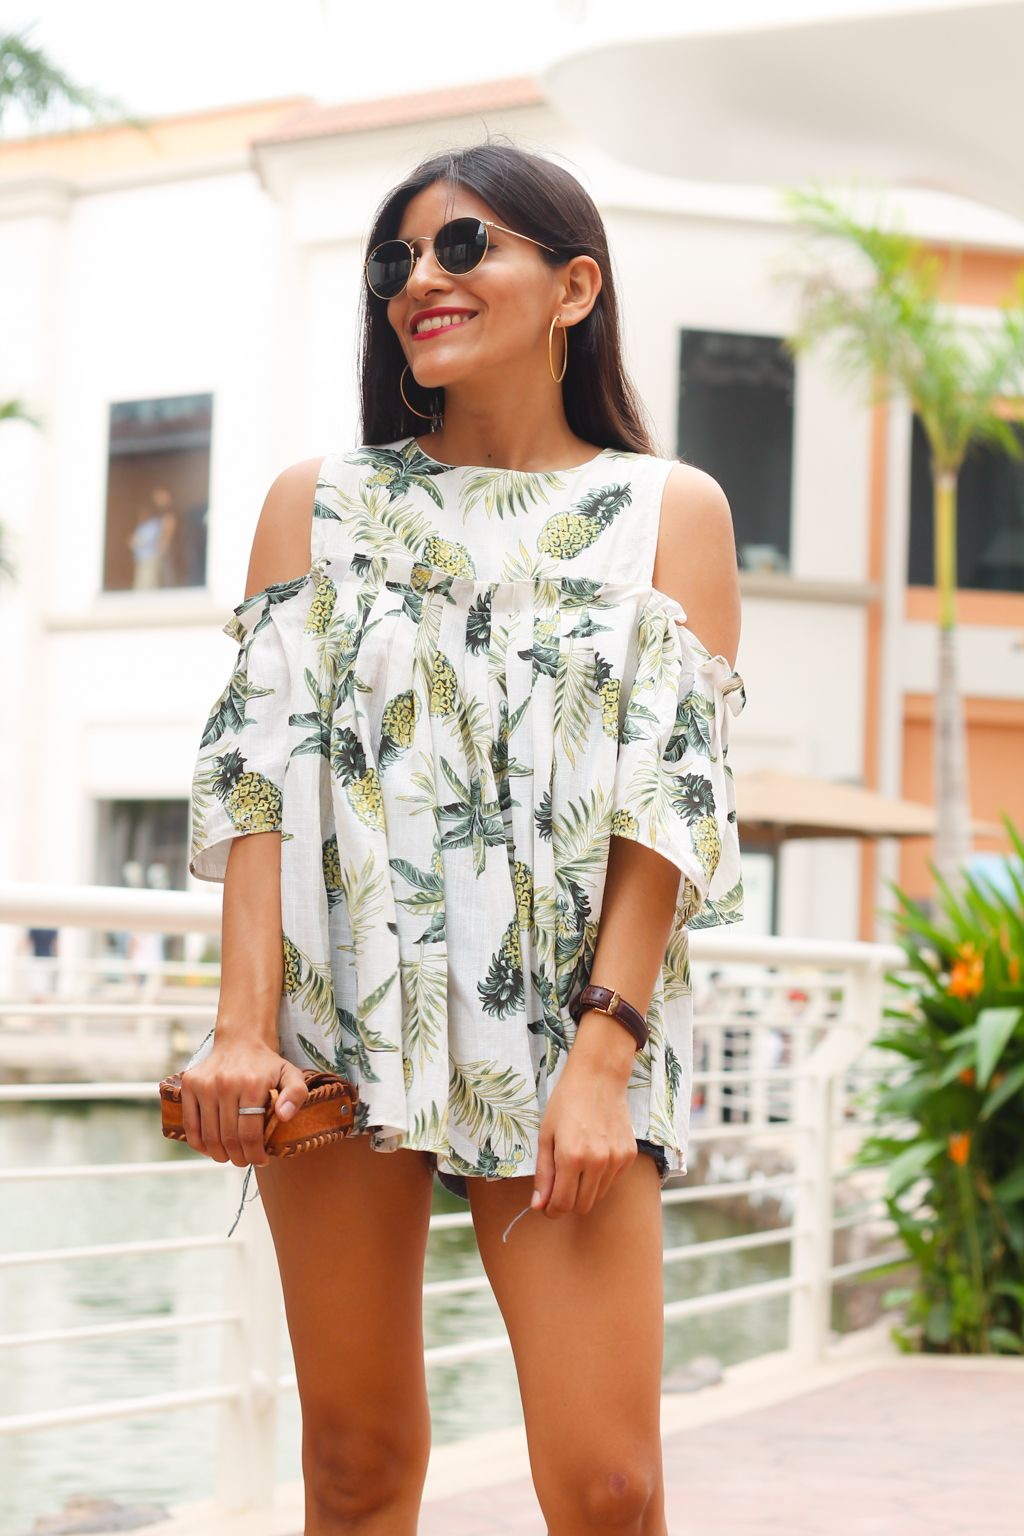 Cute pineapple top with denim shorts for the perfect summer look!